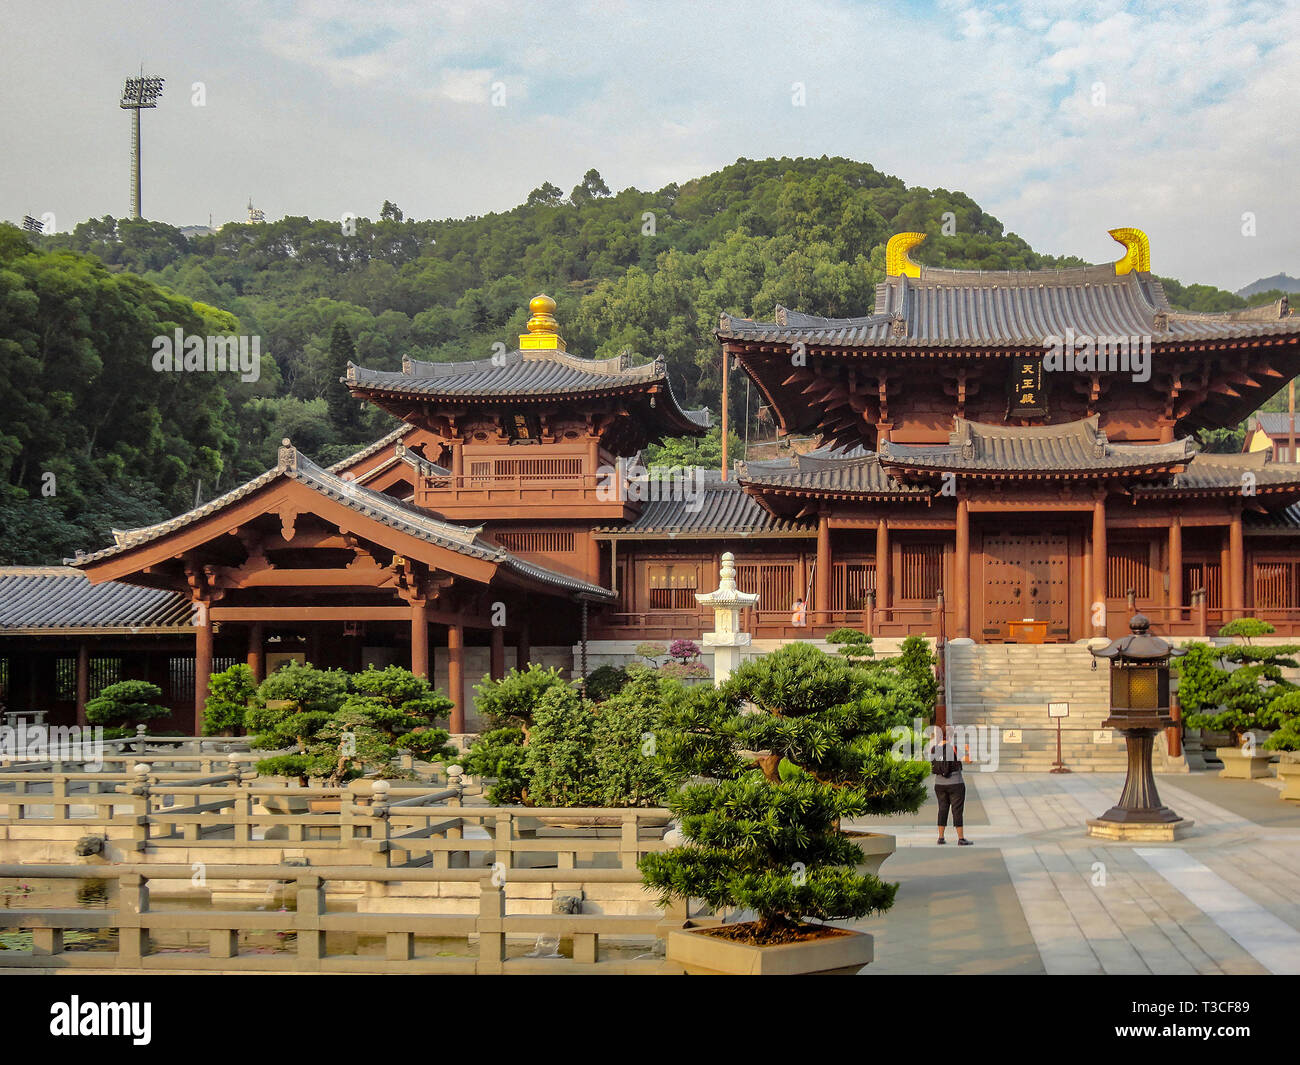 Buddhist temple in Hong Kong - Stock Image